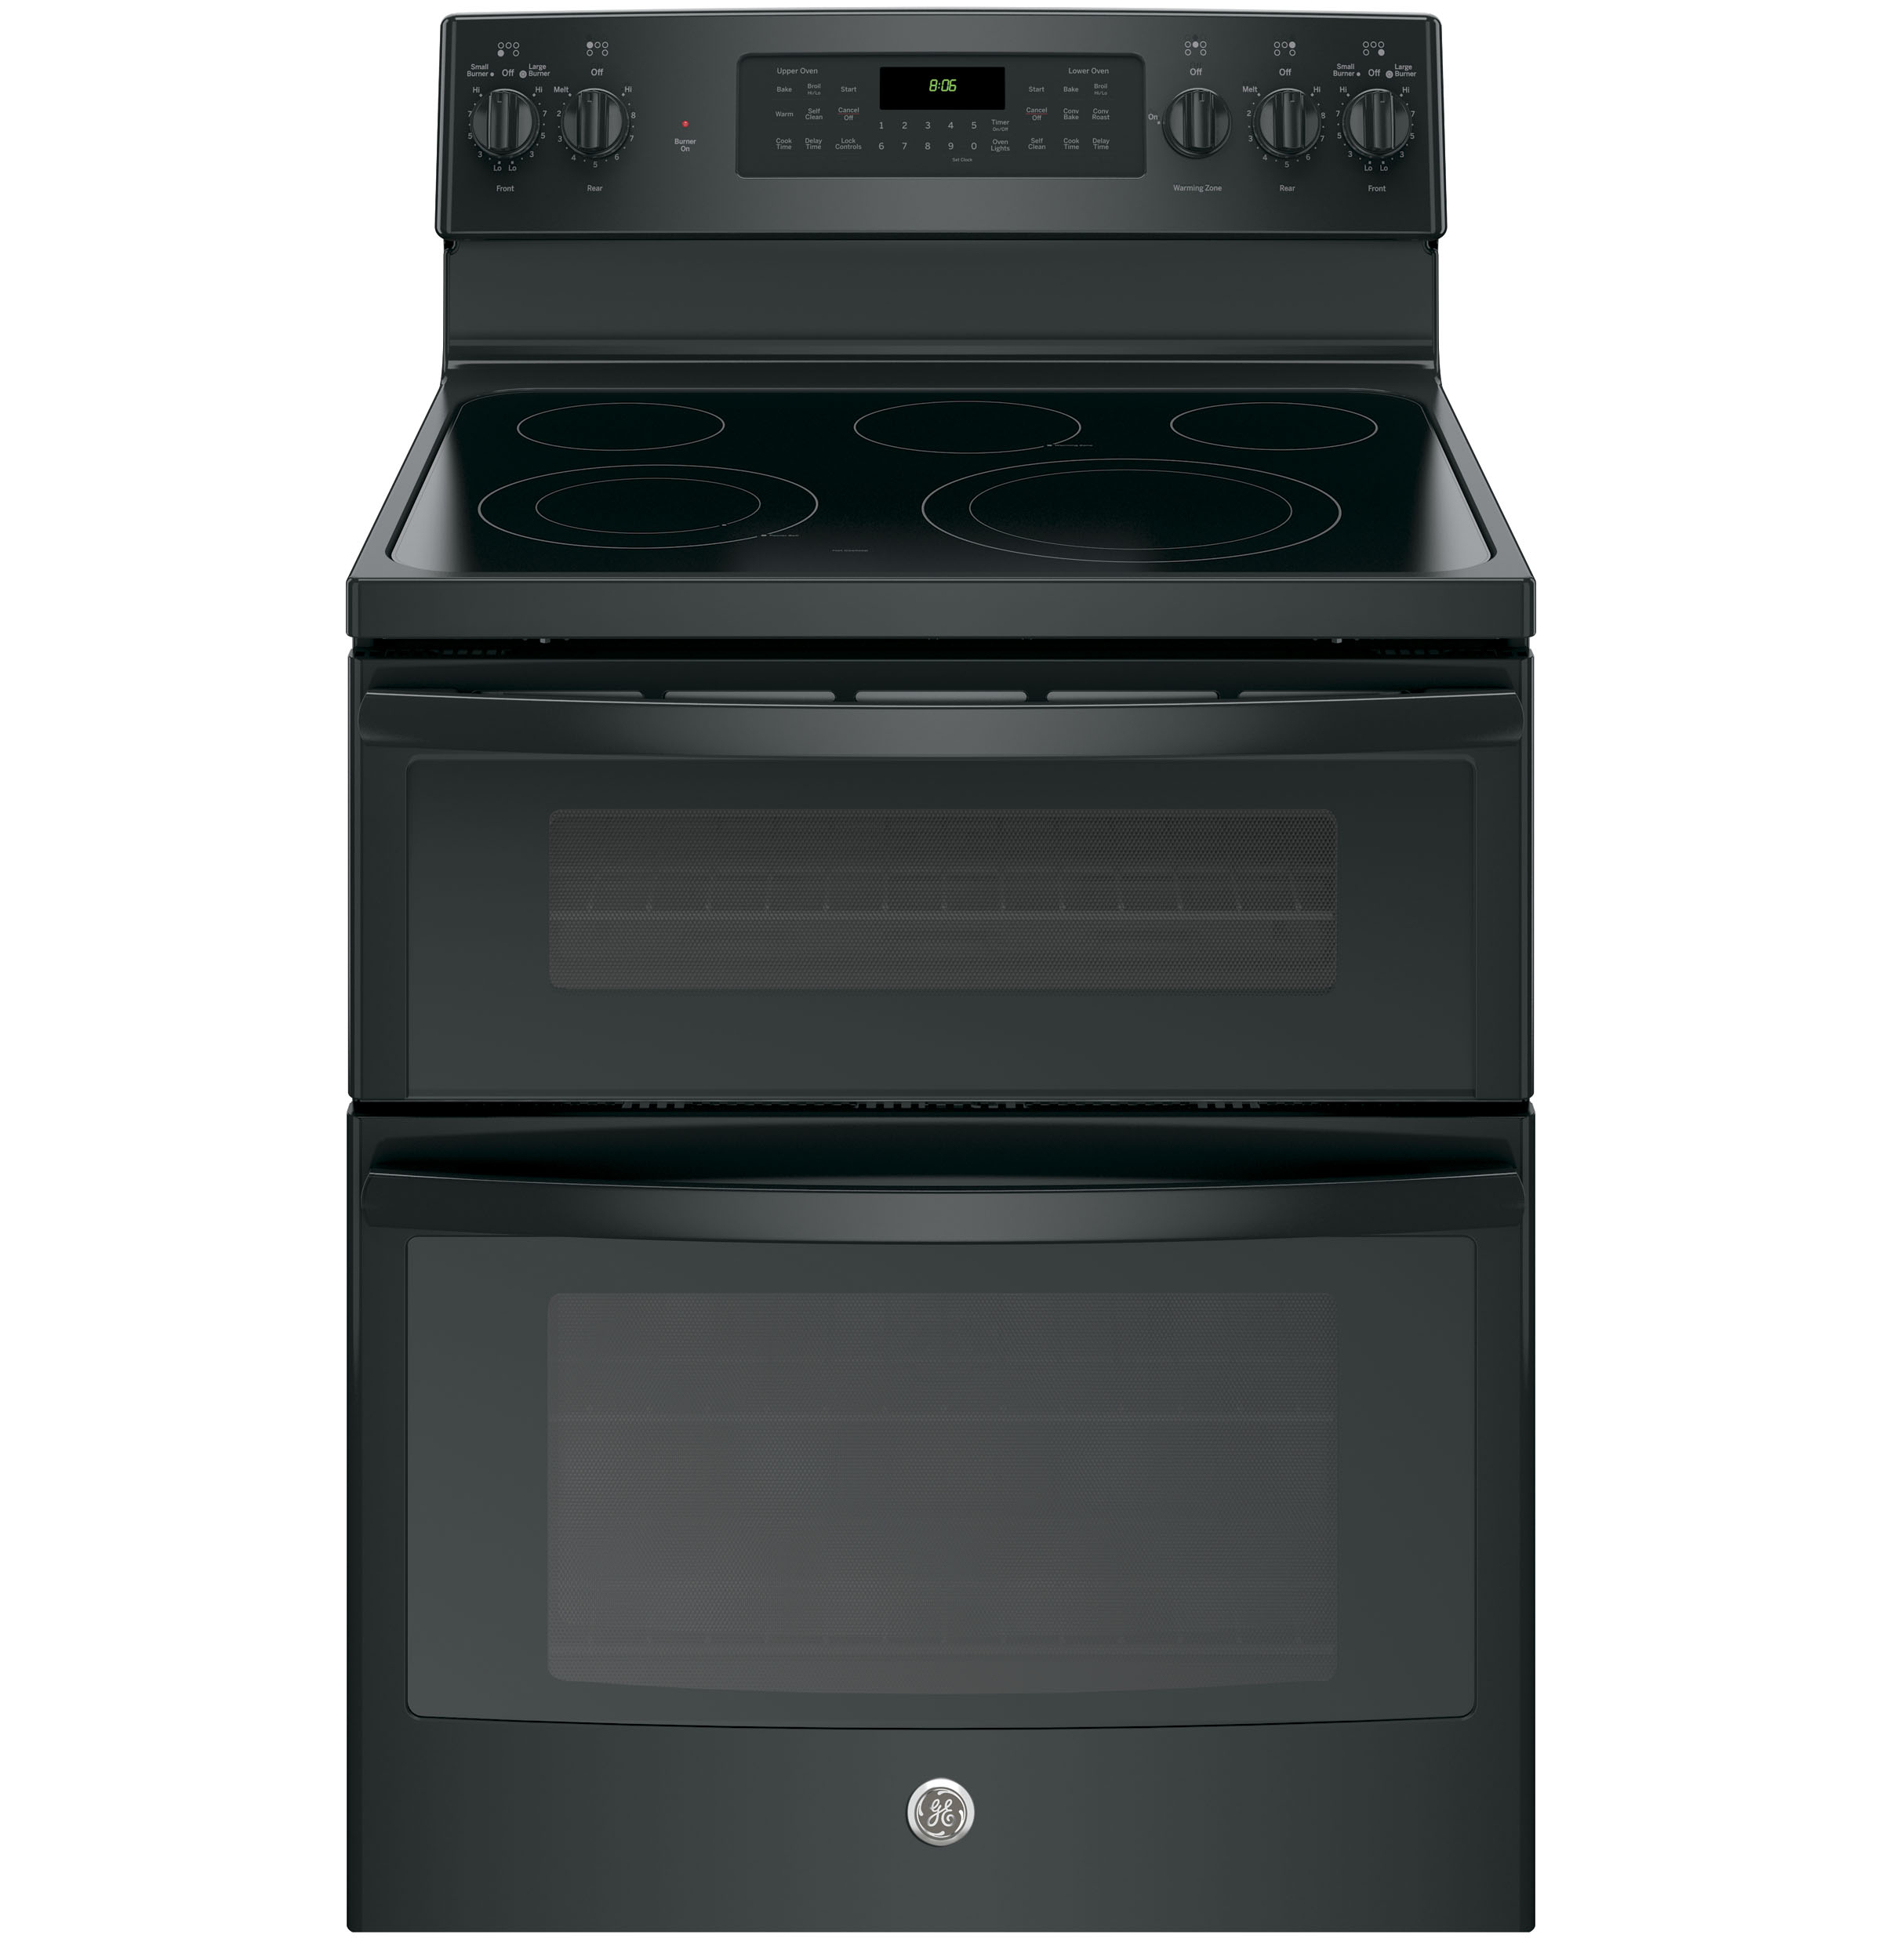 """GE Appliances GE Electric Ranges 30"""" Electric Double Oven Convection Range - Item Number: JB860DJBB"""